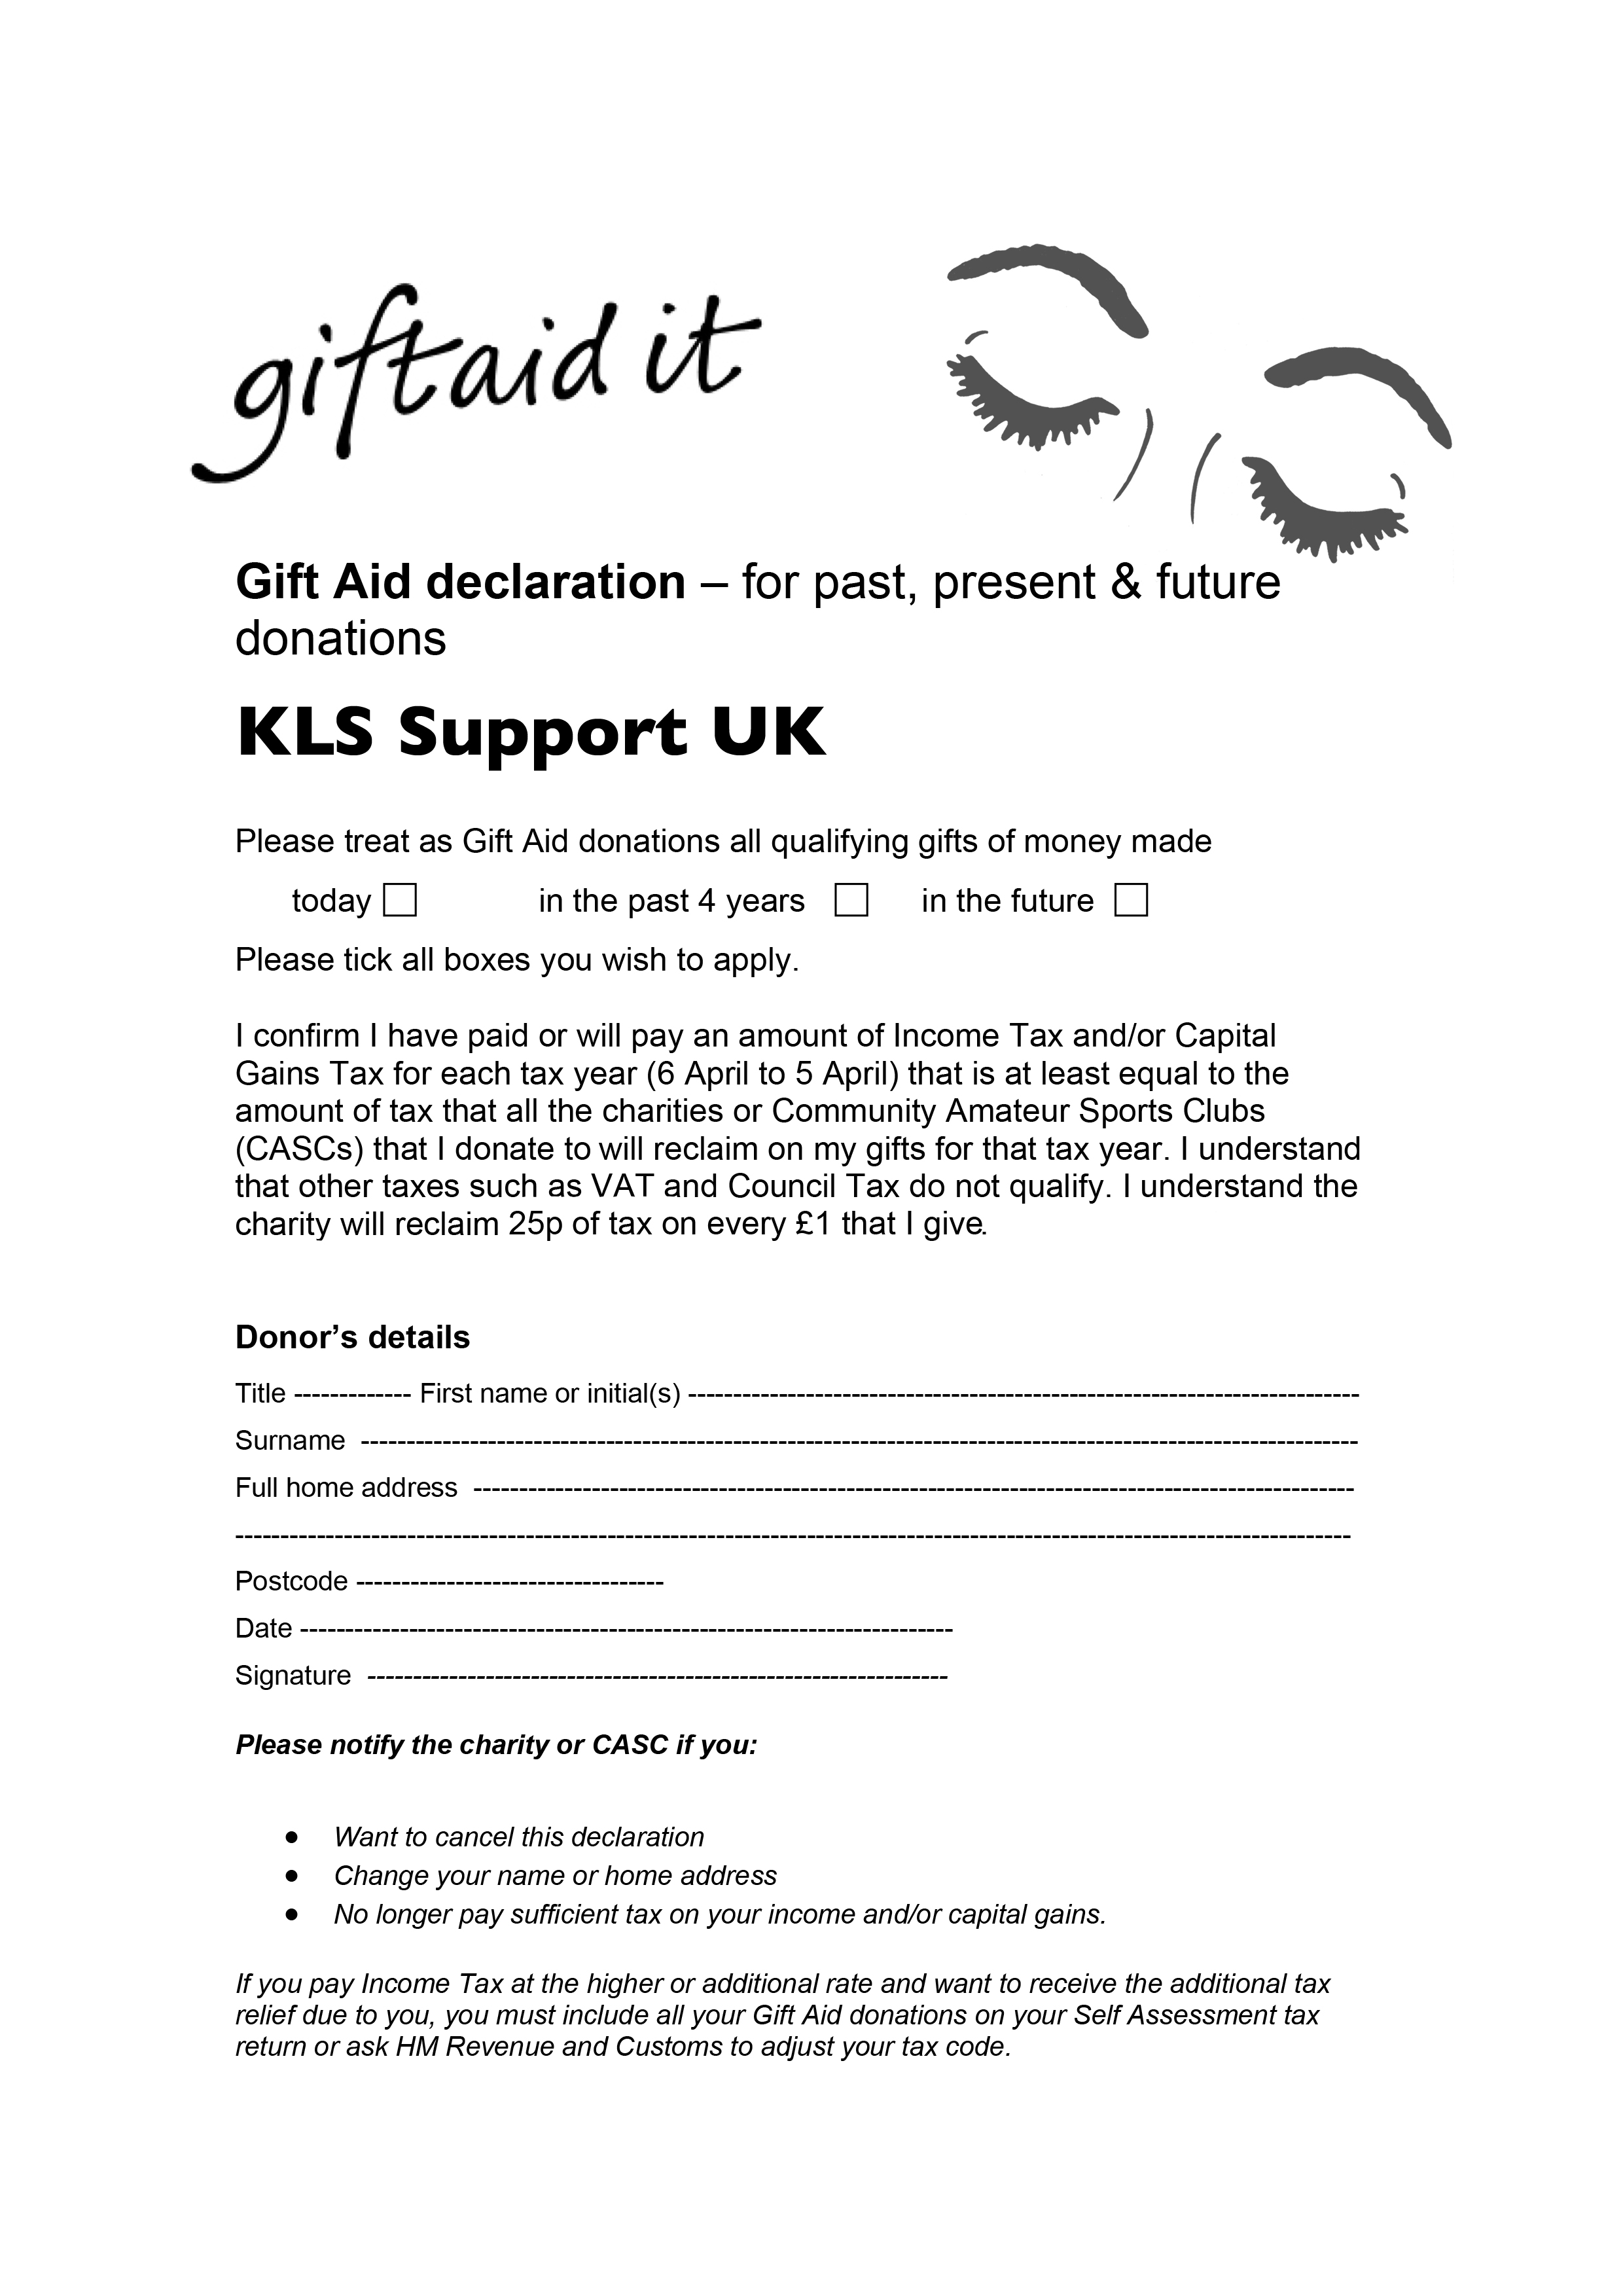 Kls support uk helping families affected by kleine levin syndrome an a4 form can be downloaded negle Image collections